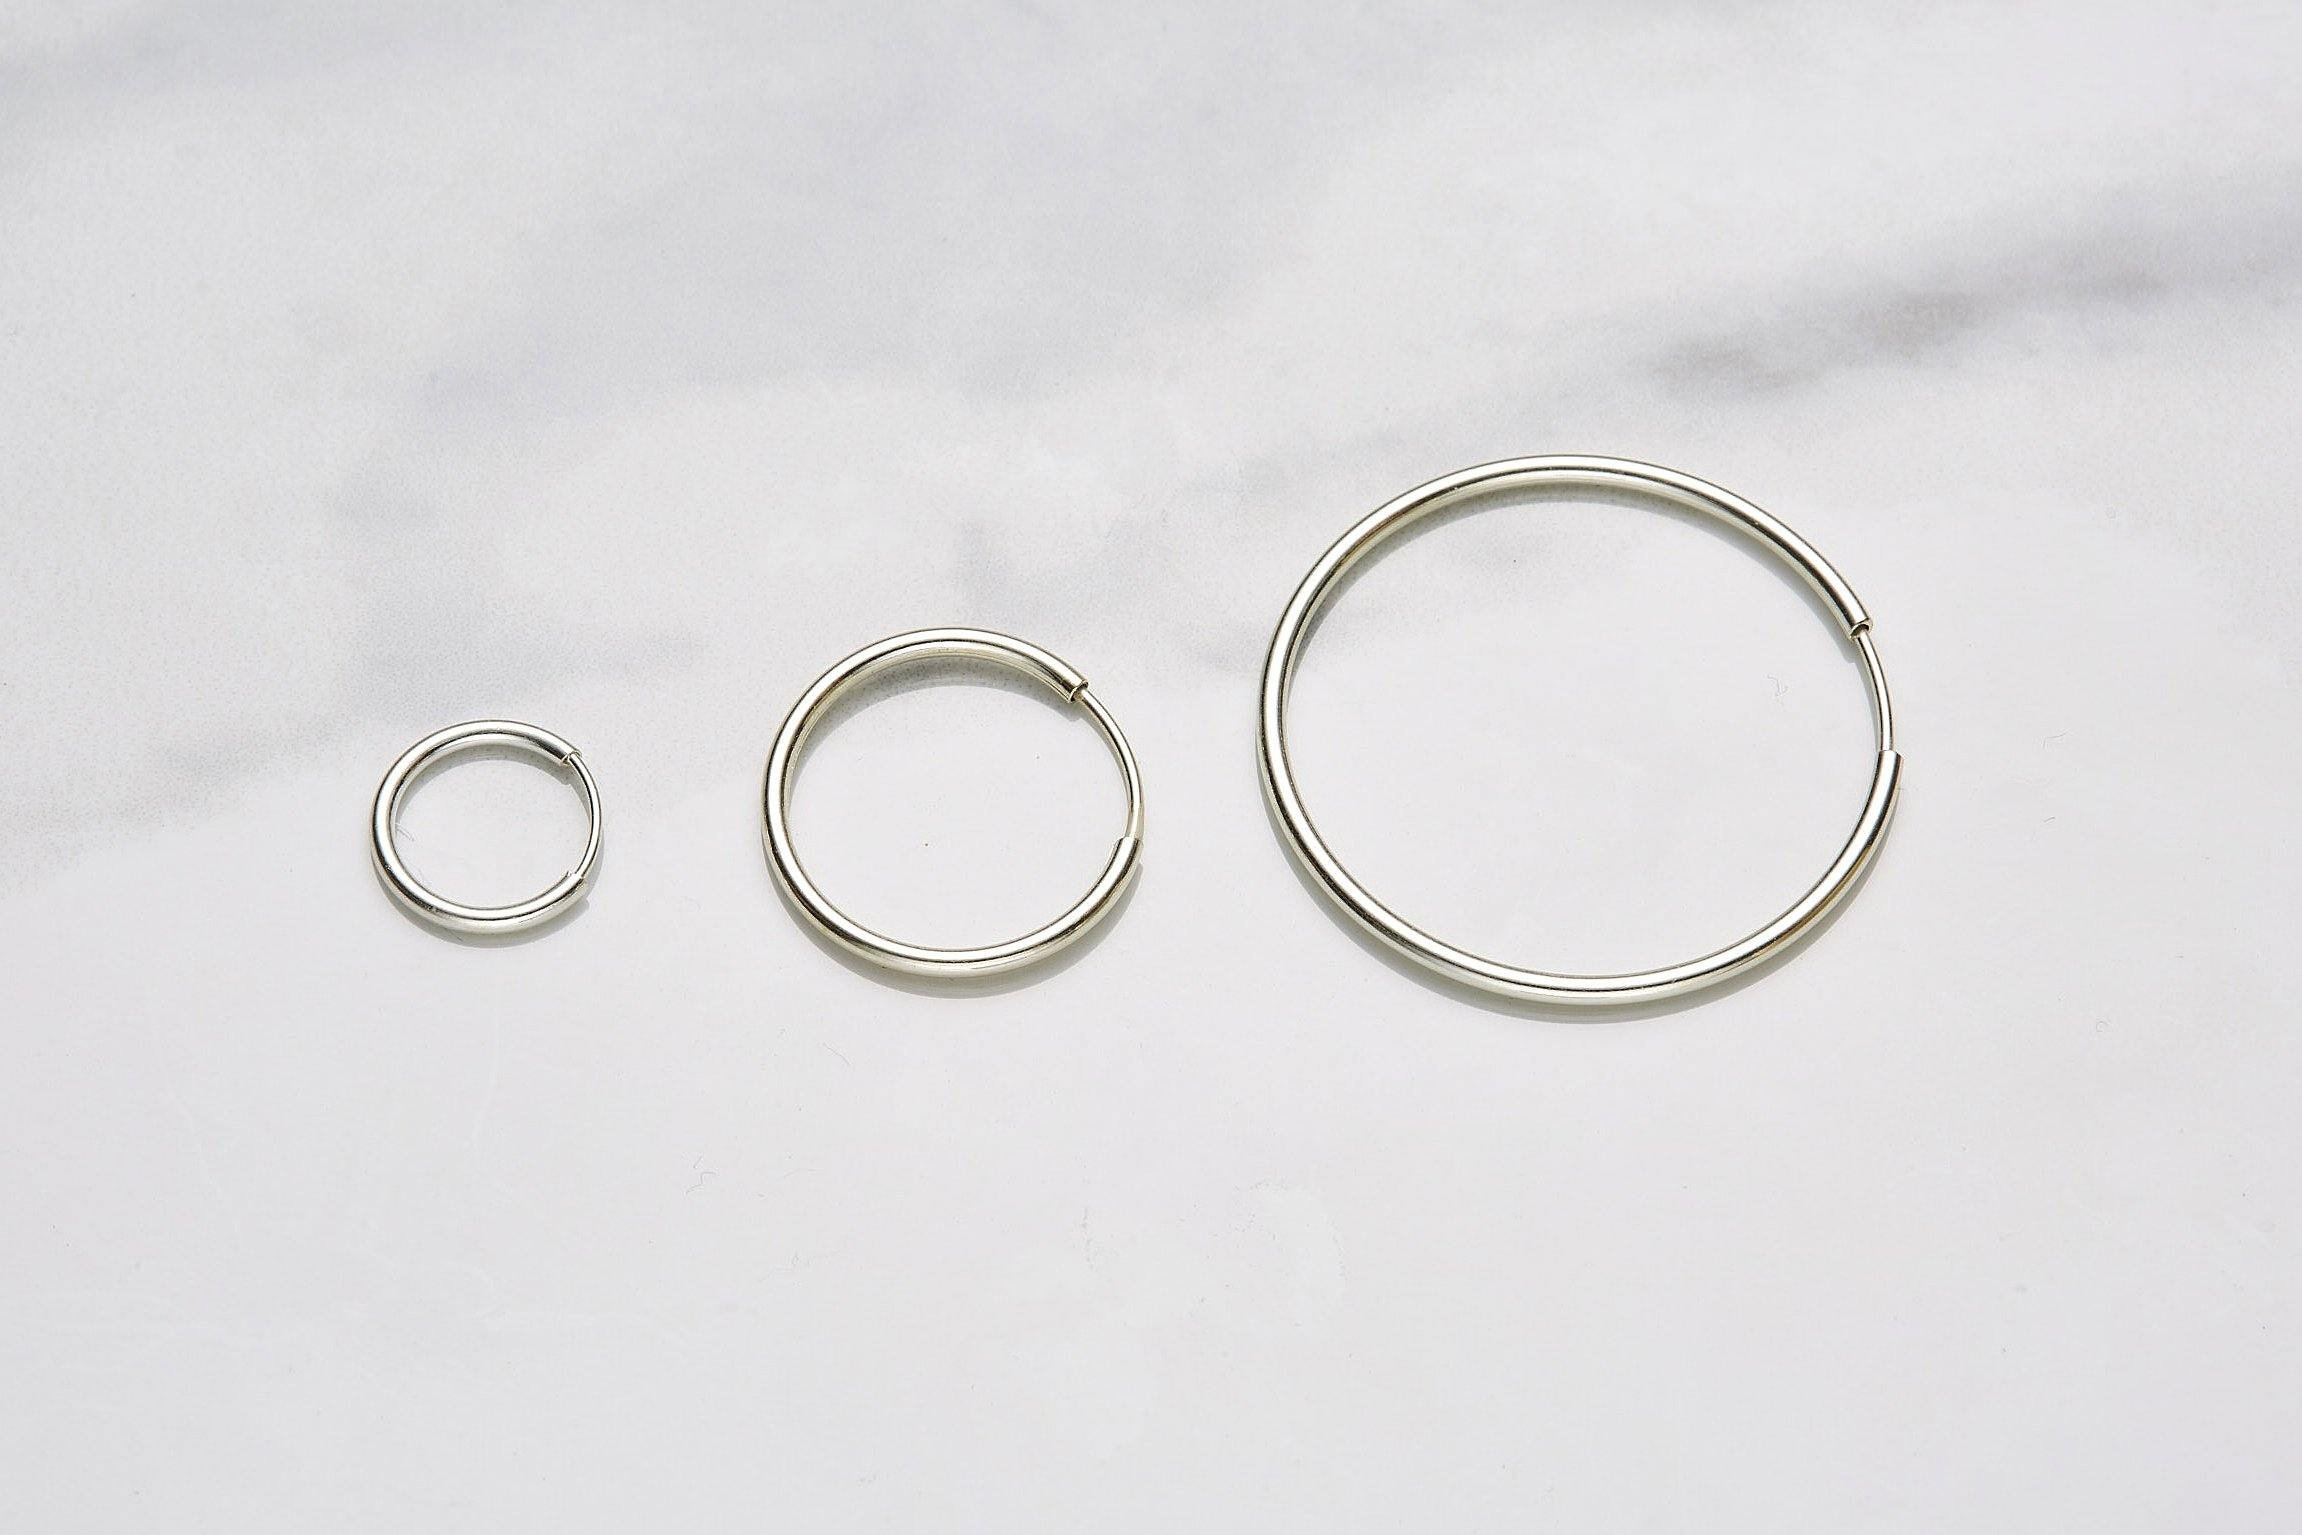 17mm hoop earrings